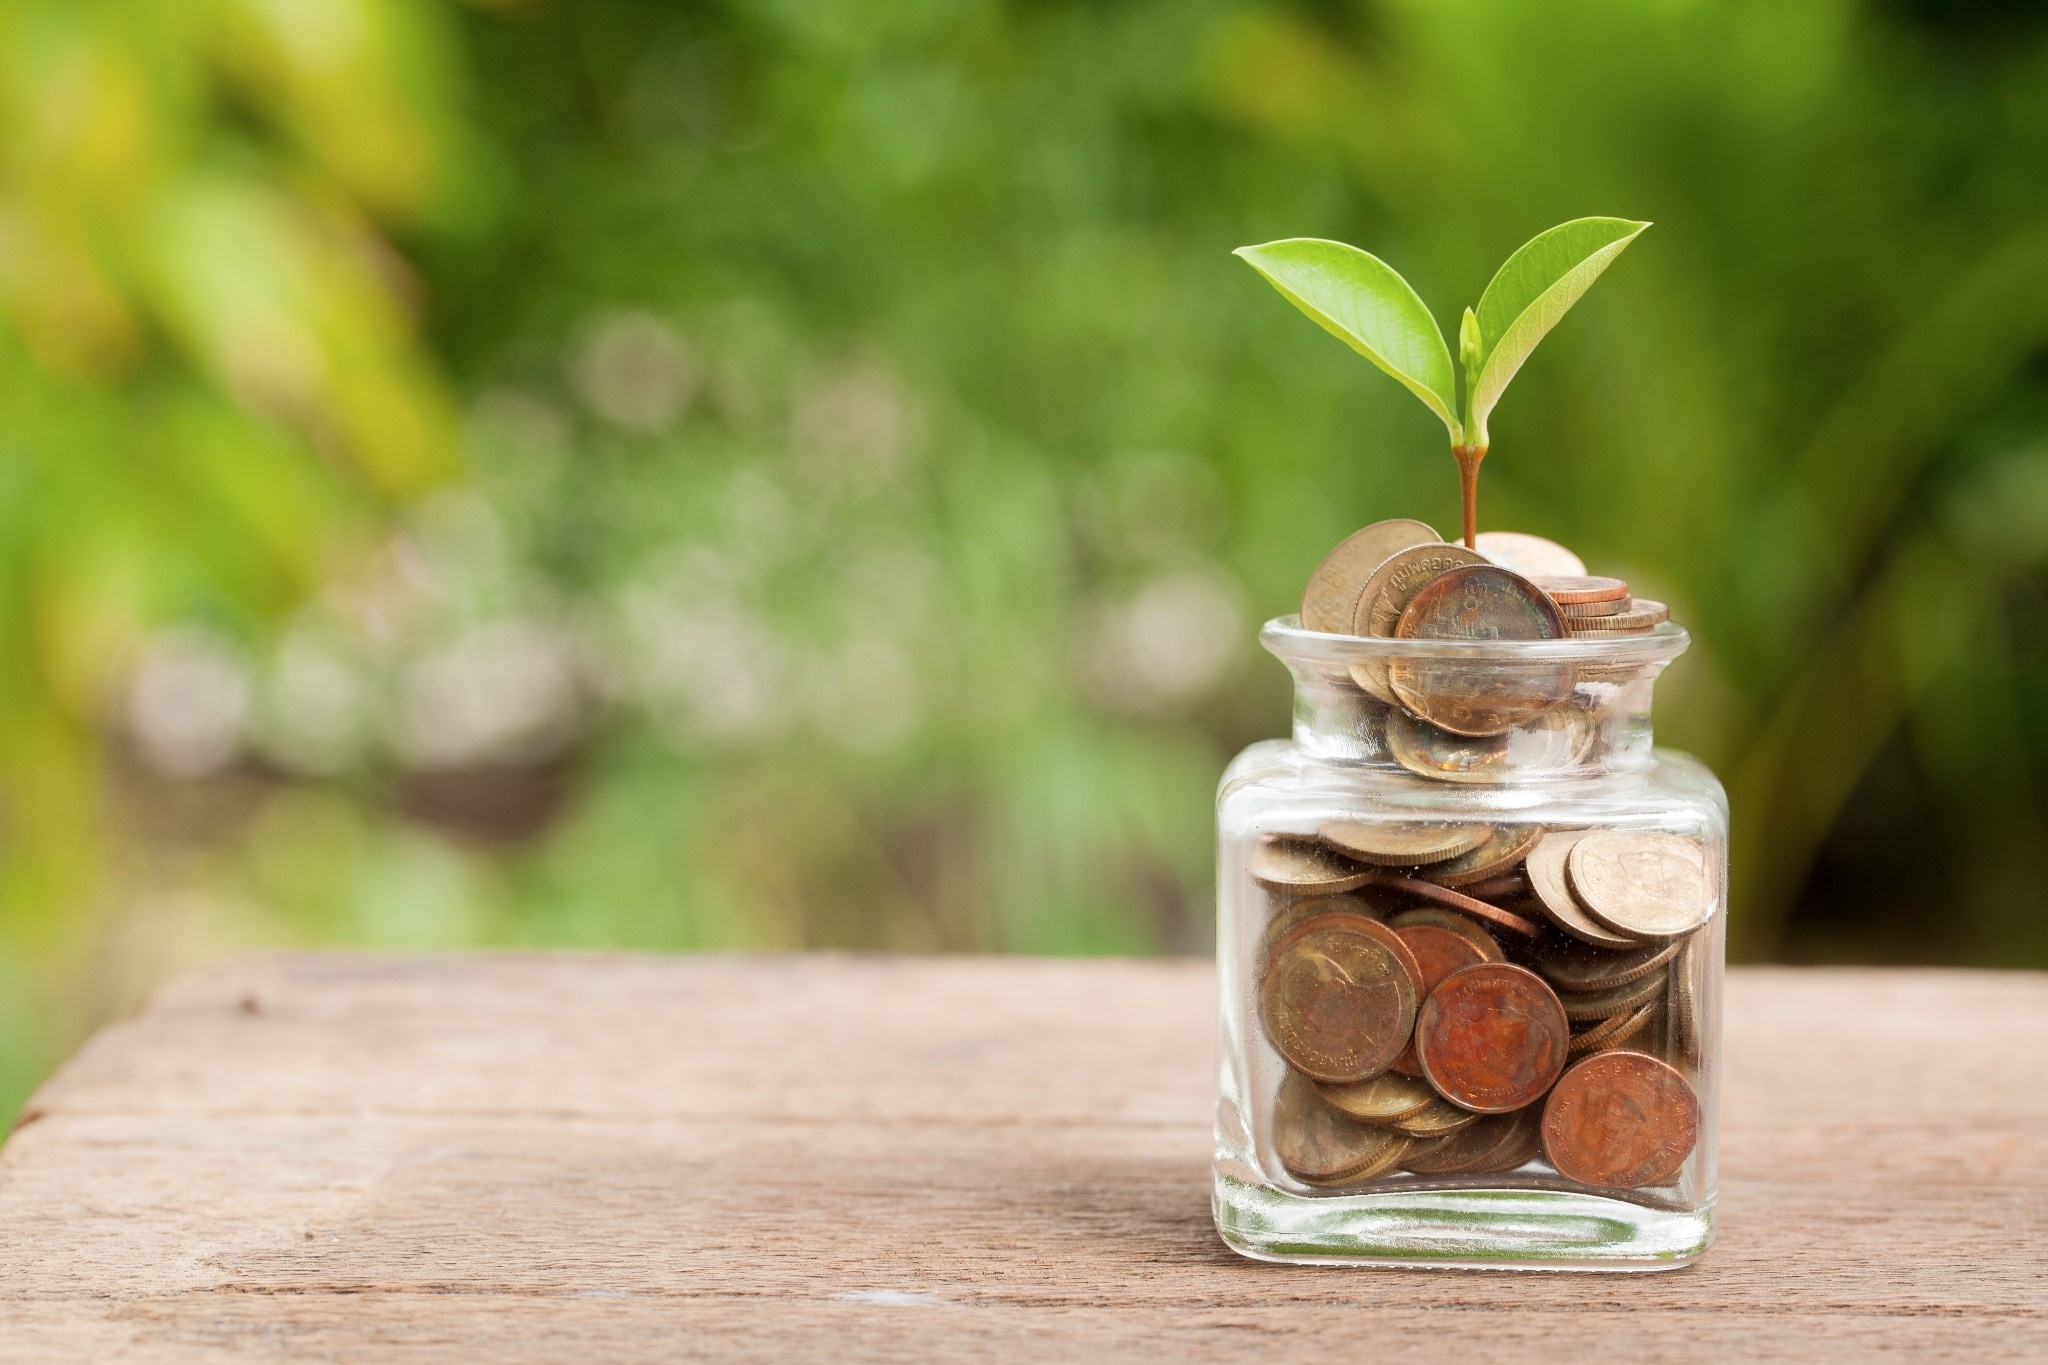 How To Save Money: 10 Tips by Money Saving Experts